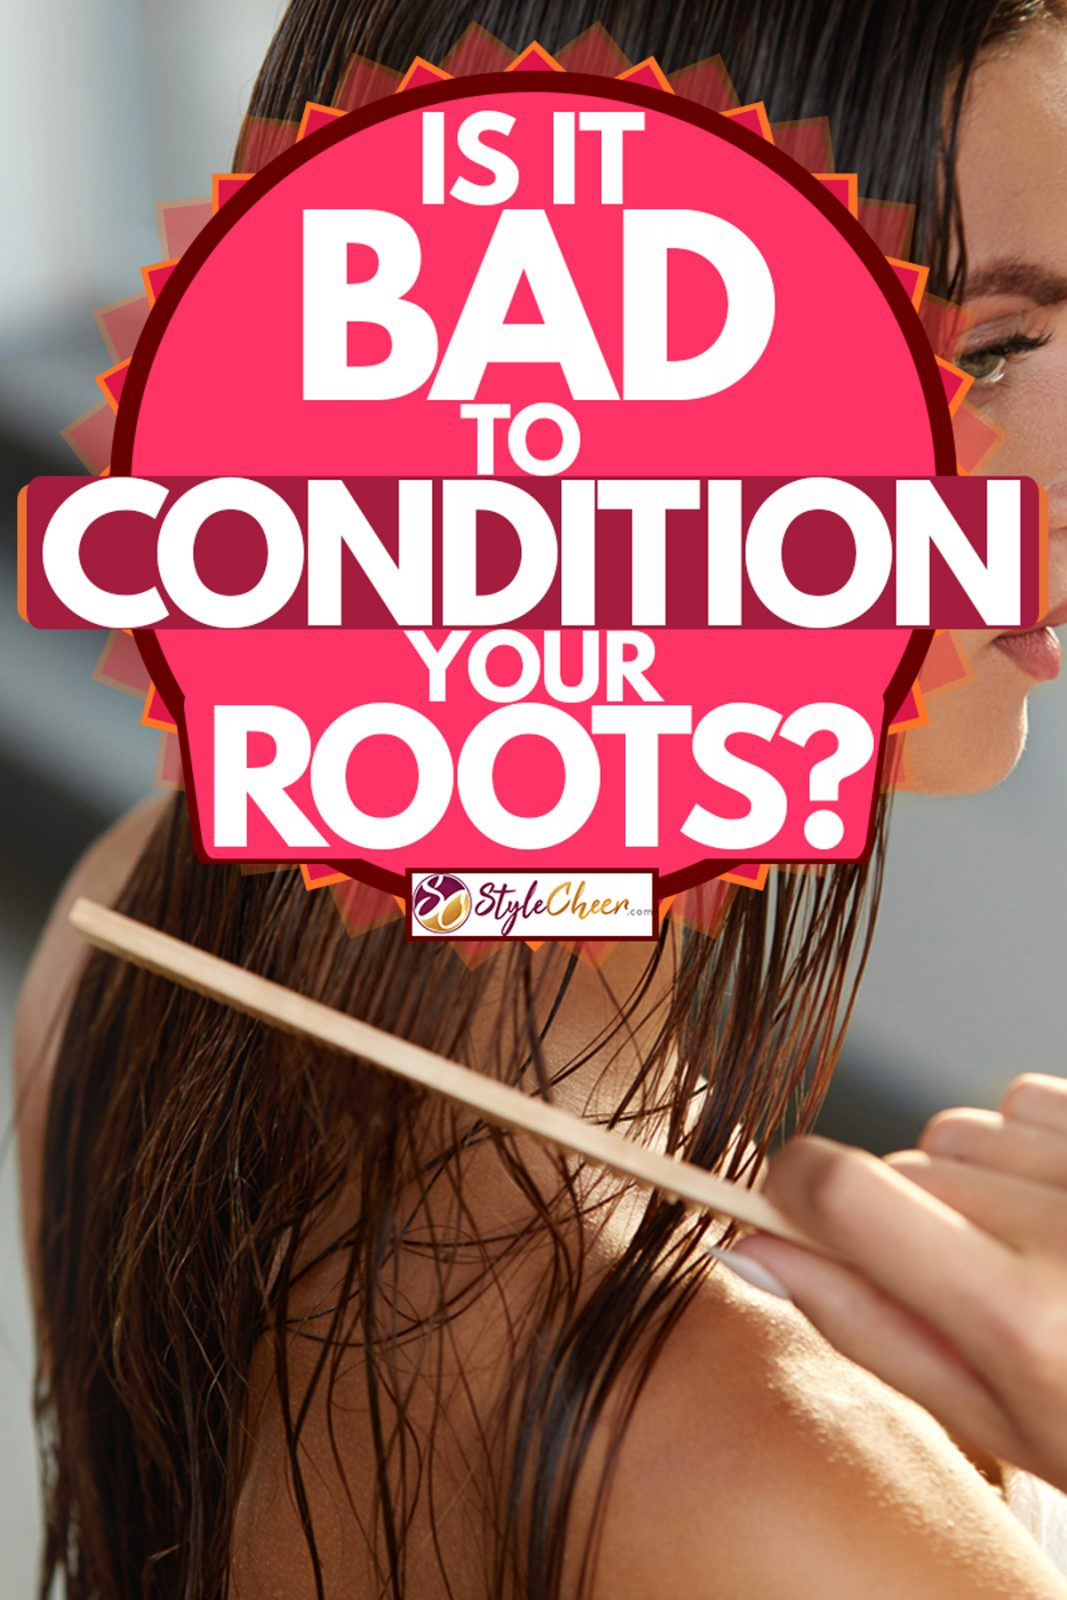 A woman combing her hair after conditioning it, Is It Bad To Condition Your Roots?